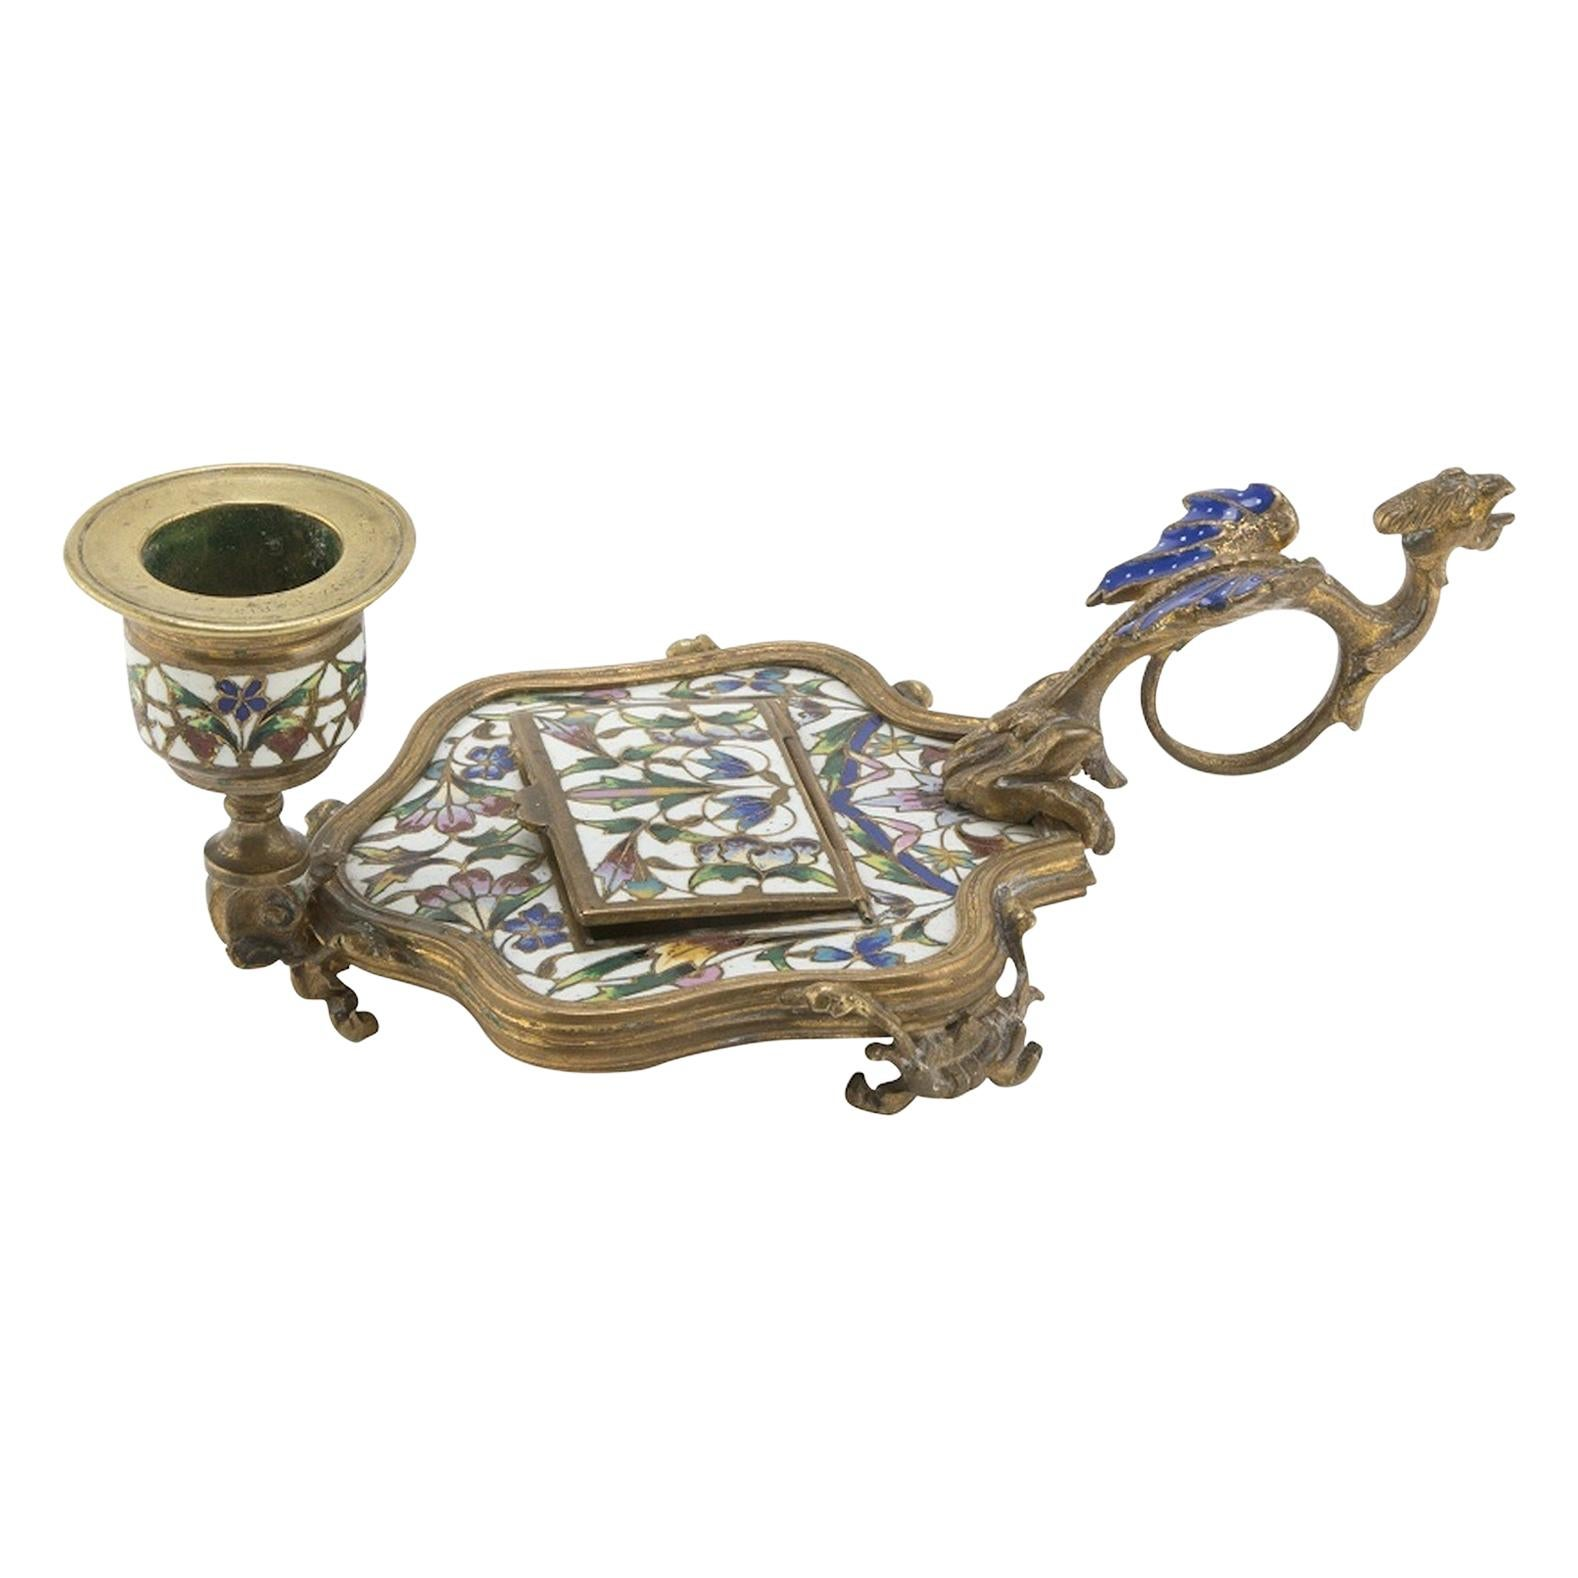 Ancient Enamel Candlestick by Alphonse Giroux, France, Late 19th Century